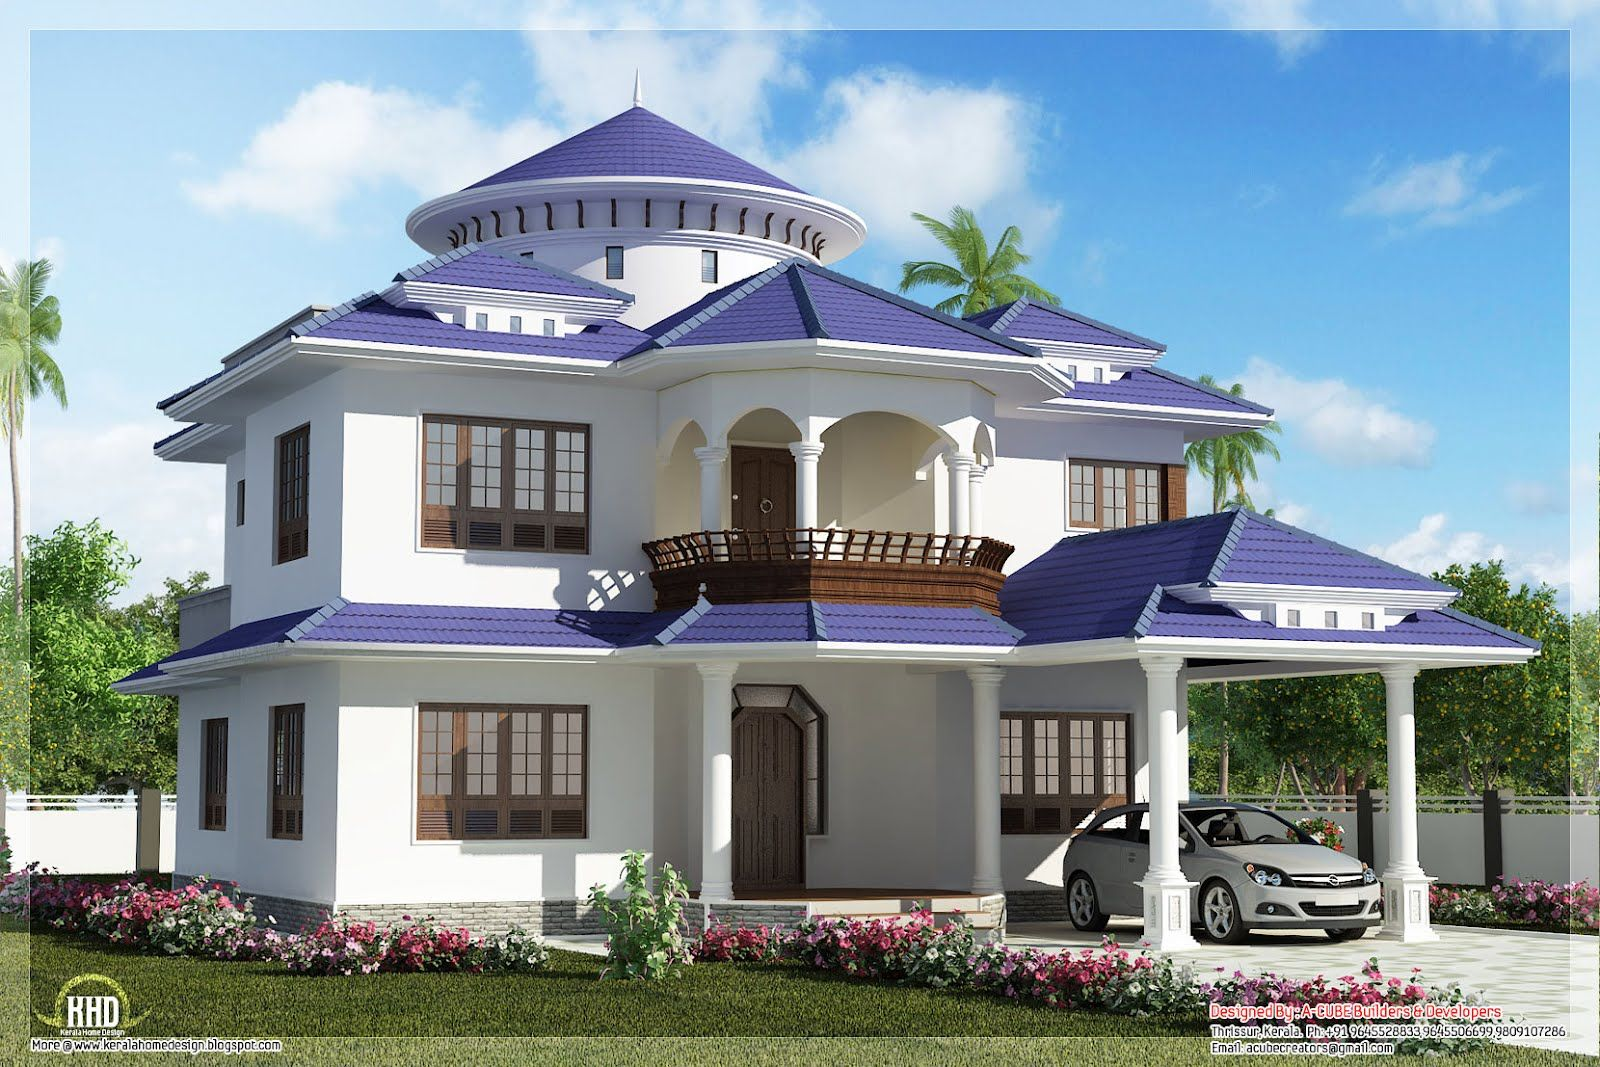 house design pictures - Home Design Images